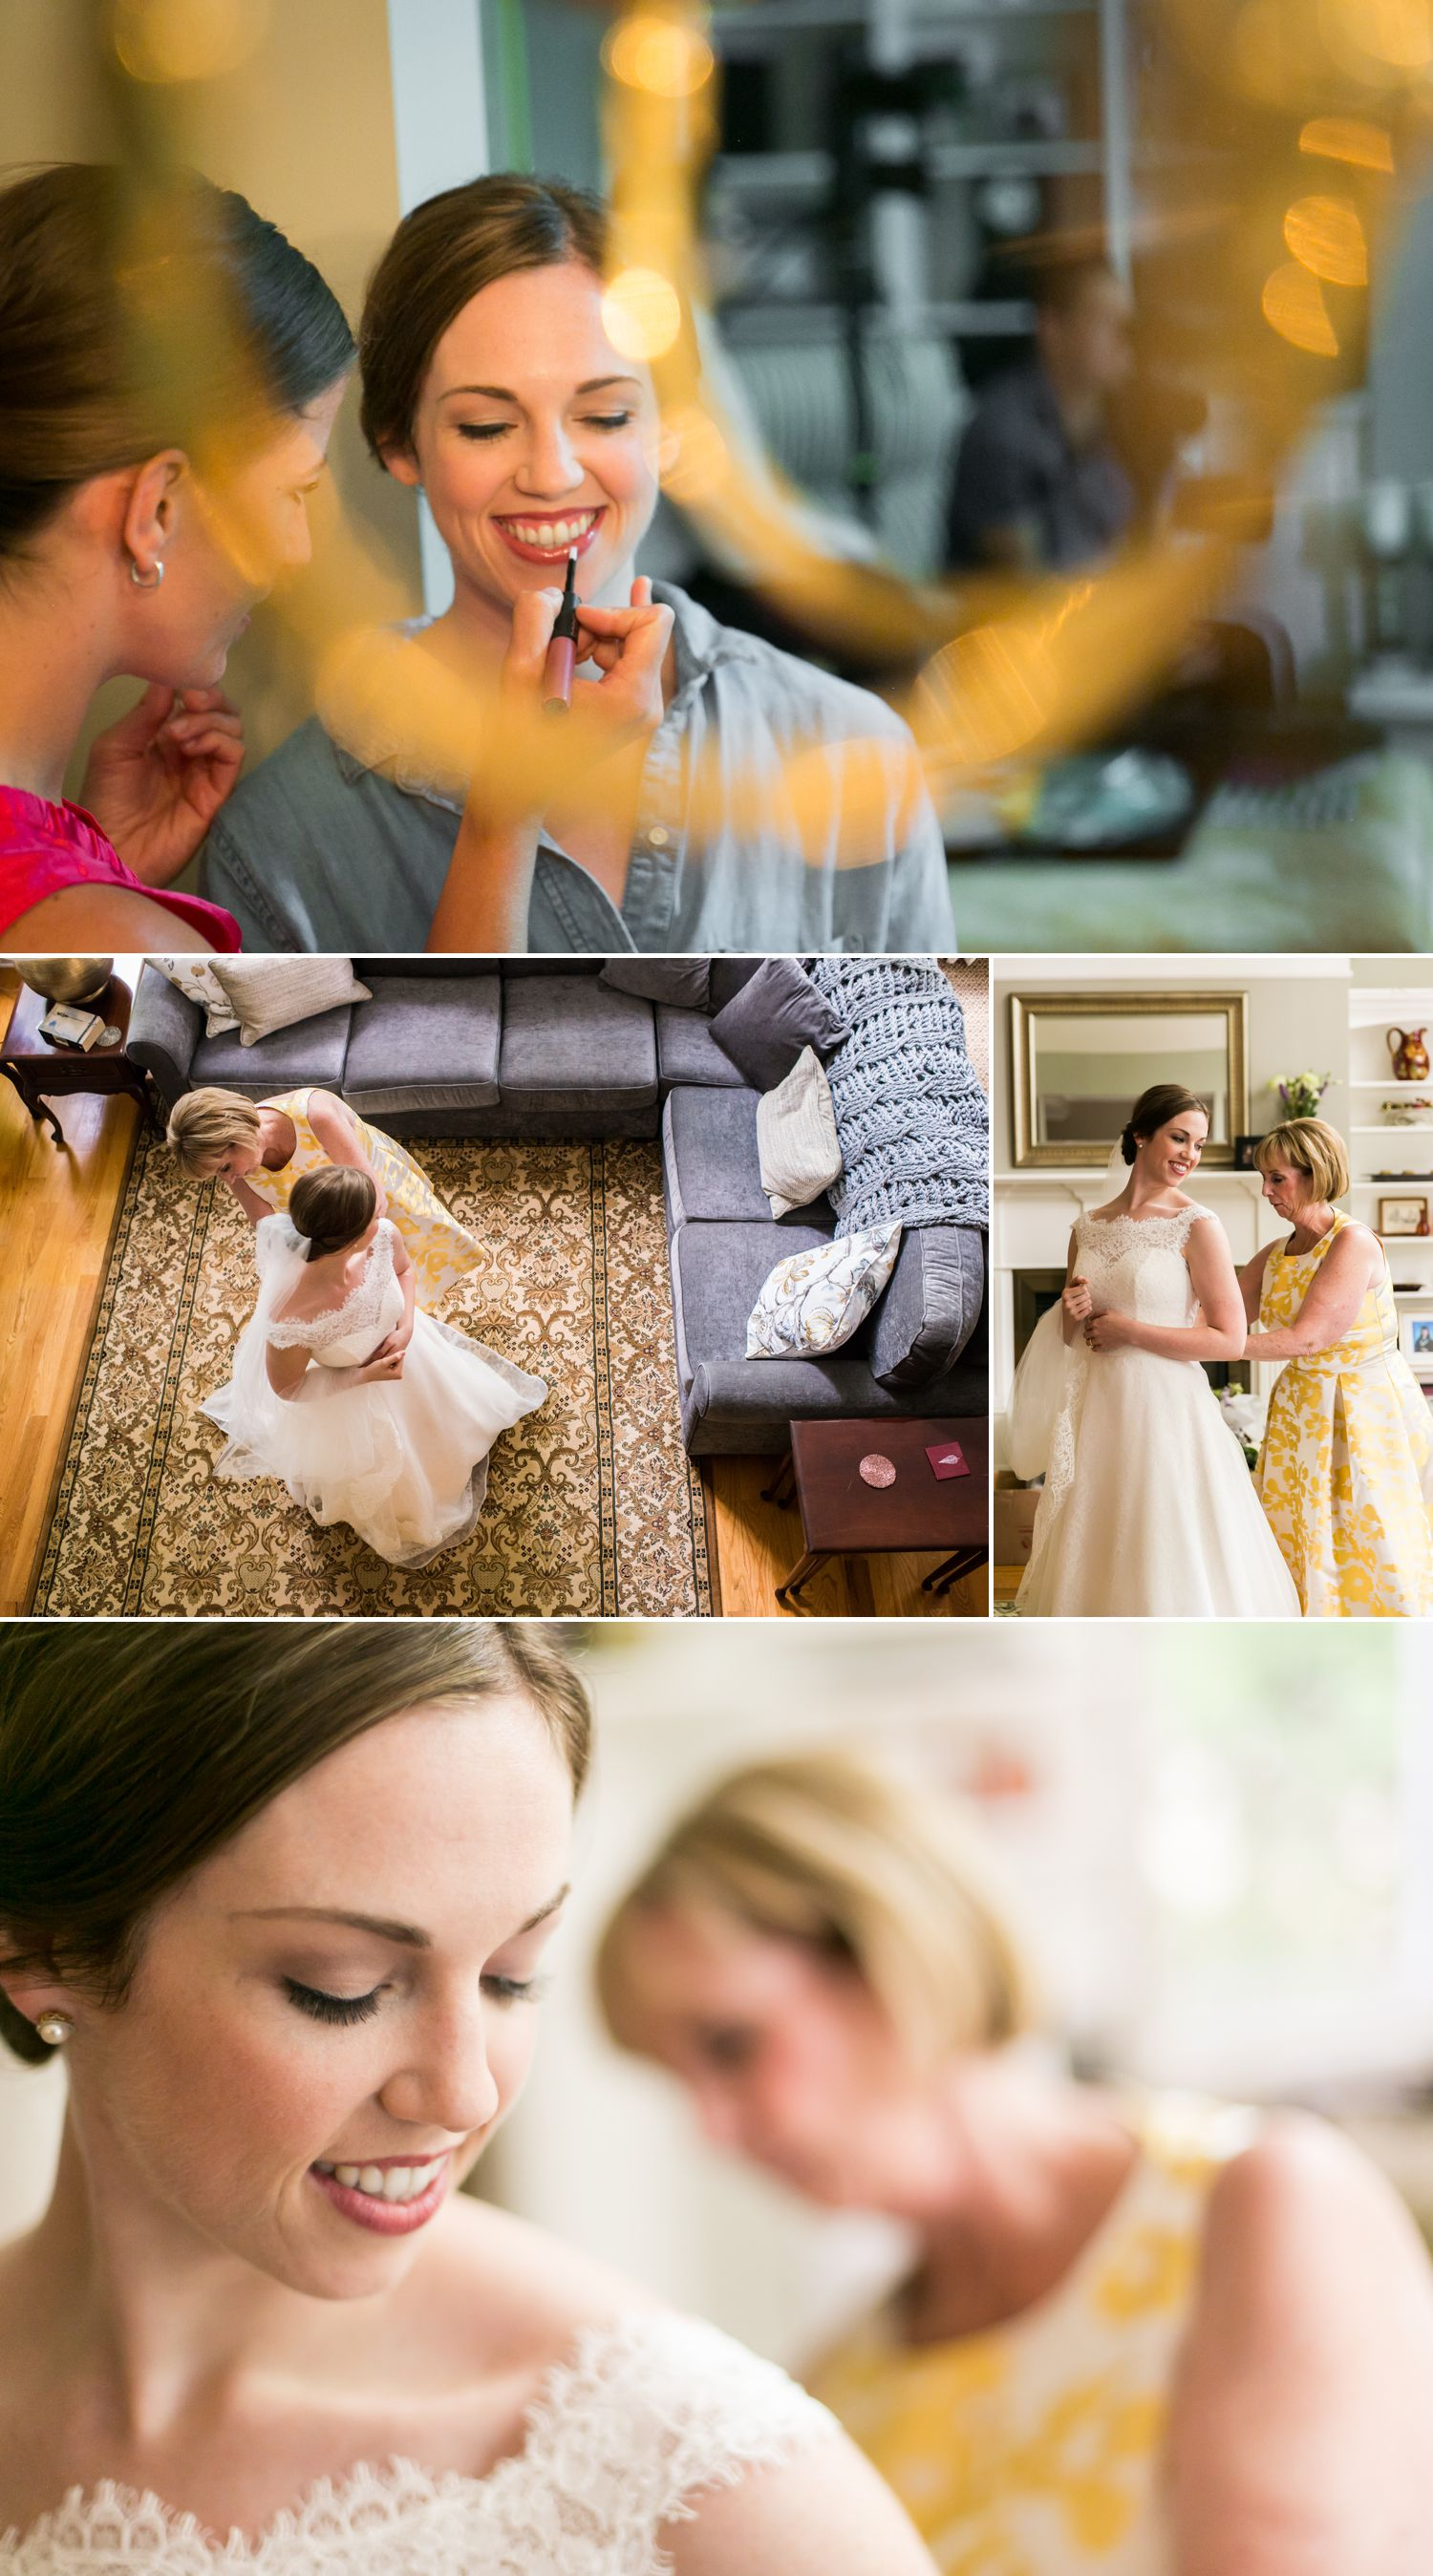 Photographs of the bride and bridesmaids getting ready for the wedding.